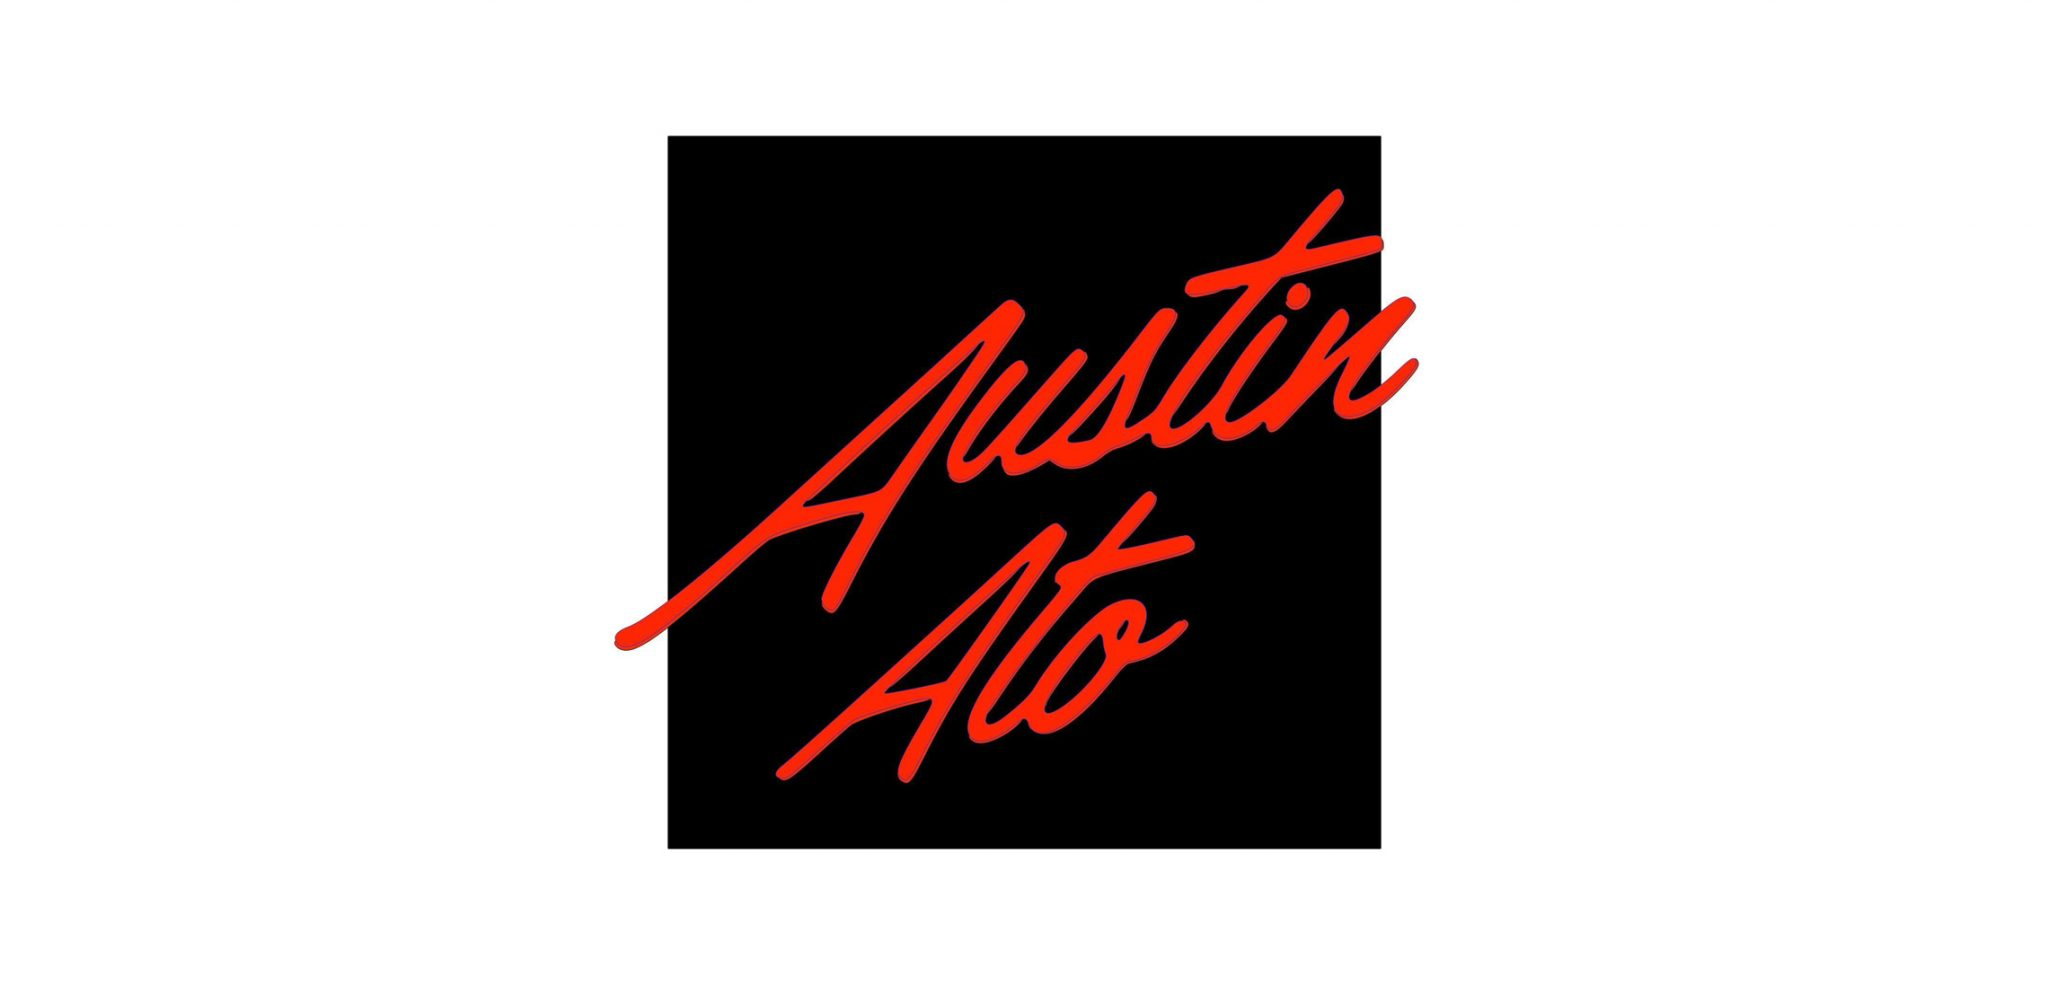 Austin Ato - The Sound Of EP hero